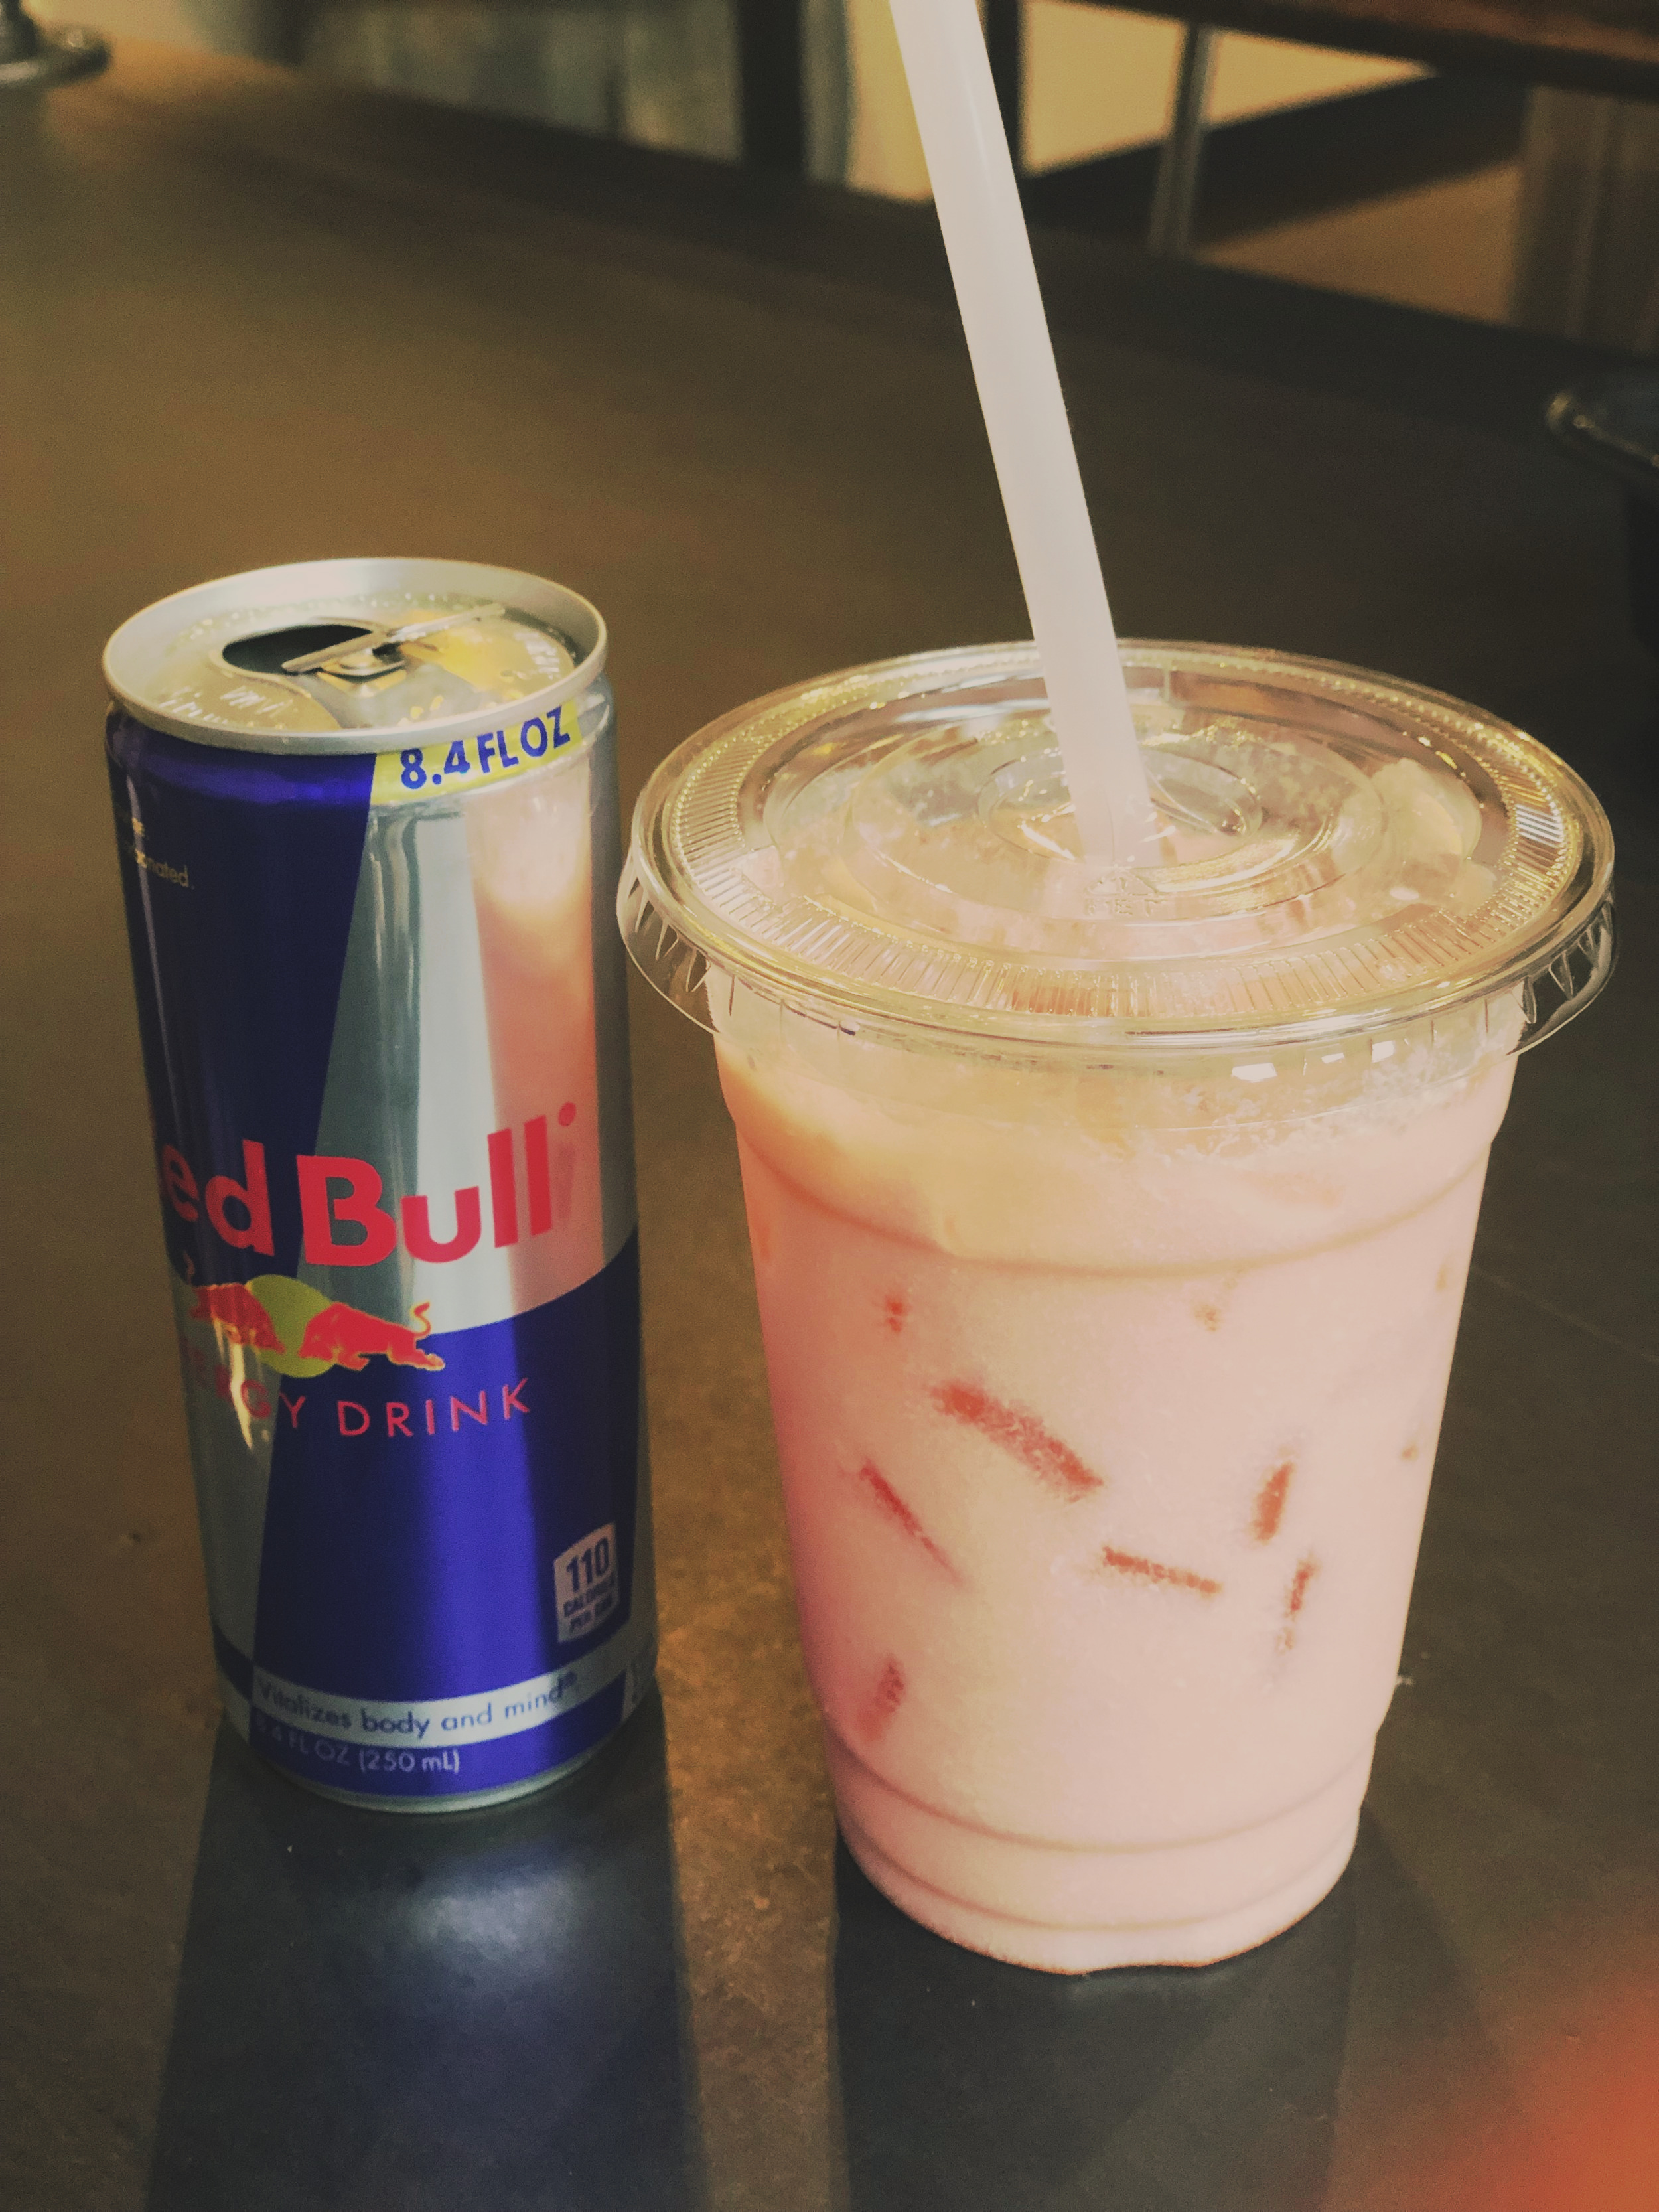 red bull Italian soda $5.75 - Ask to substitute the Red Bull for your favorite bottled beverage in our fridge to make a one-of-a-kind creation